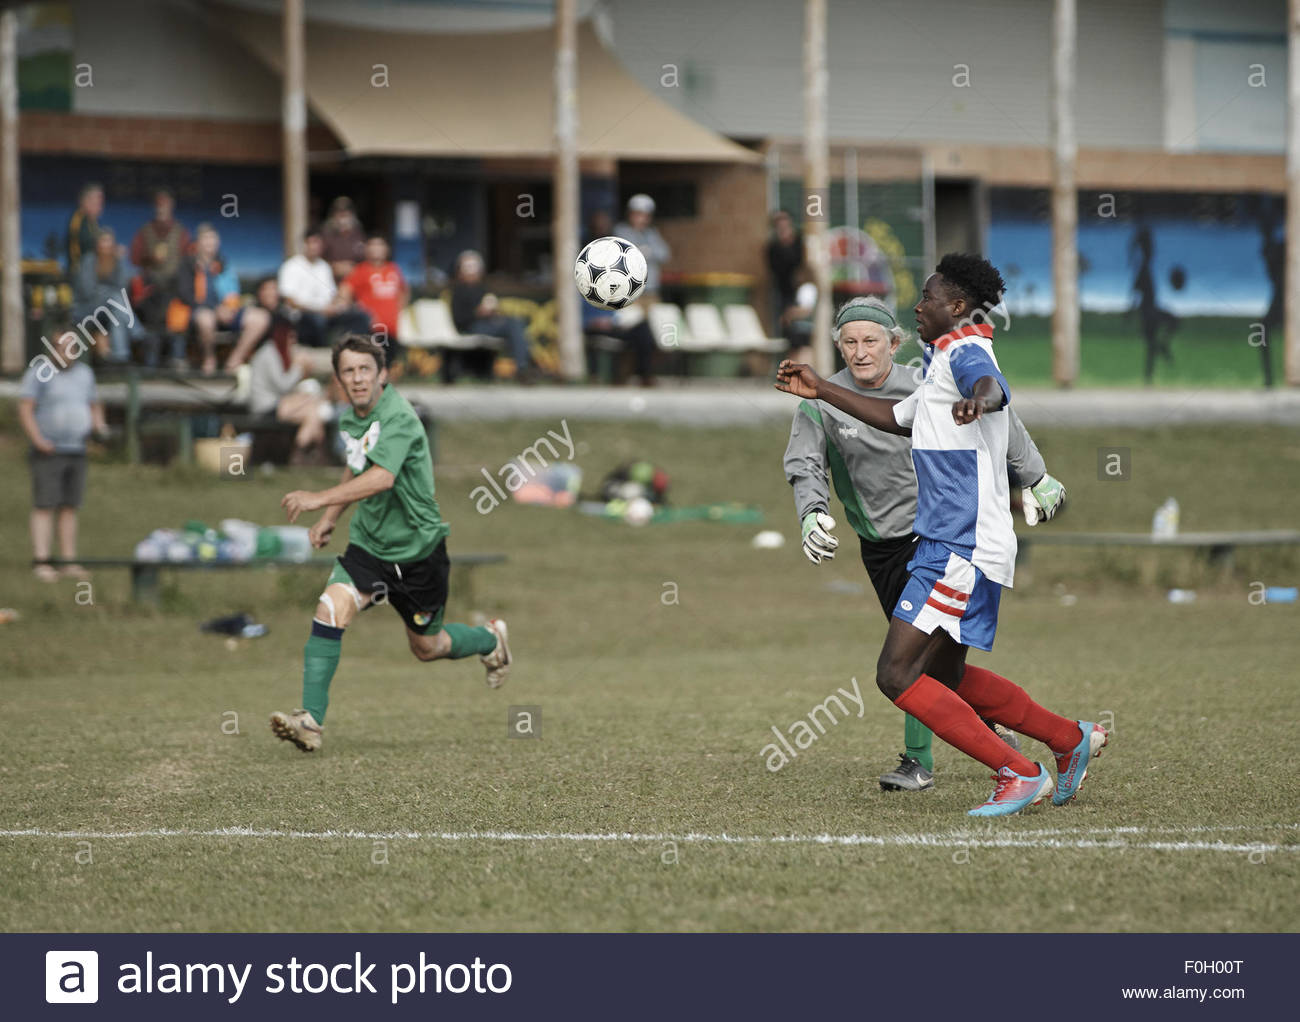 beaten the goalie, at a weekend football match; at the nimbin headers soccer club - Stock Image